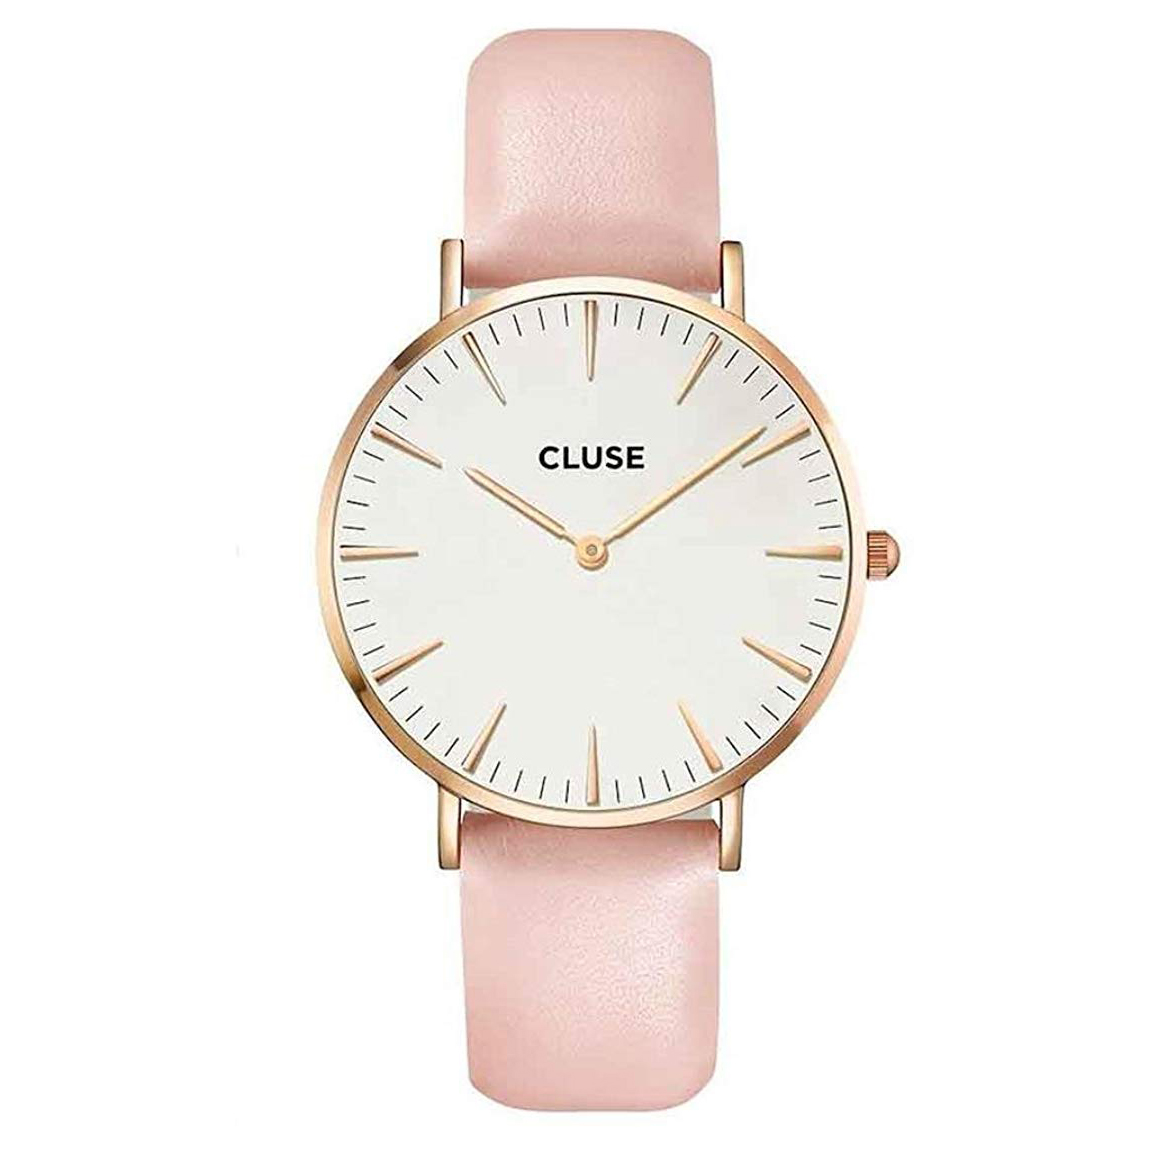 Cluse Watches for Women